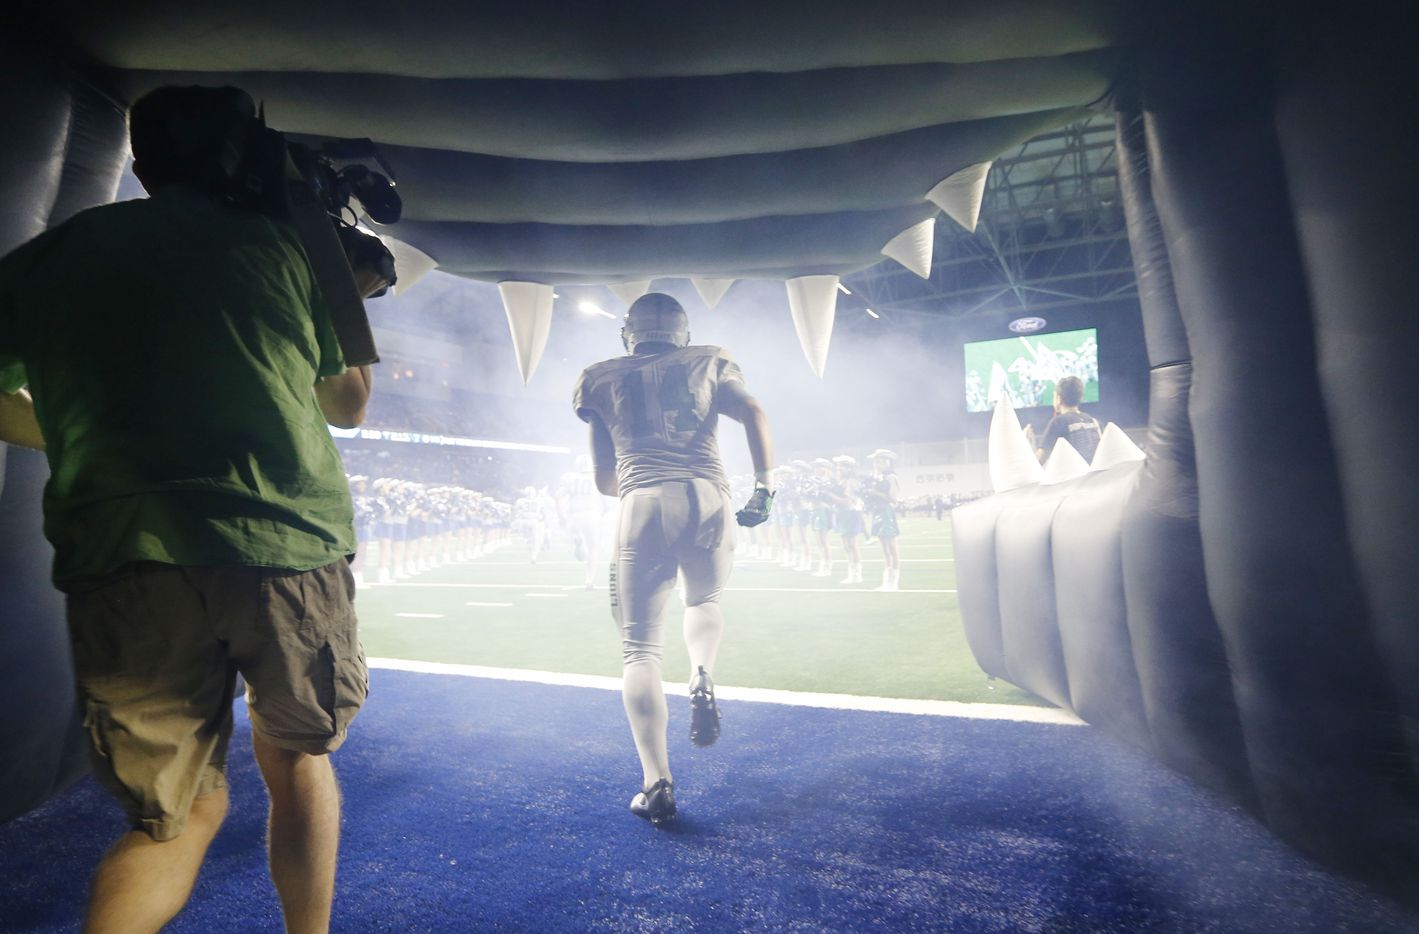 Reedy's Ridge Gibbs (14) makes his way onto the field before playing against Independence High School during the first high school football game at The Star in Frisco on Saturday, August 27, 2016. (Vernon Bryant/The Dallas Morning News)